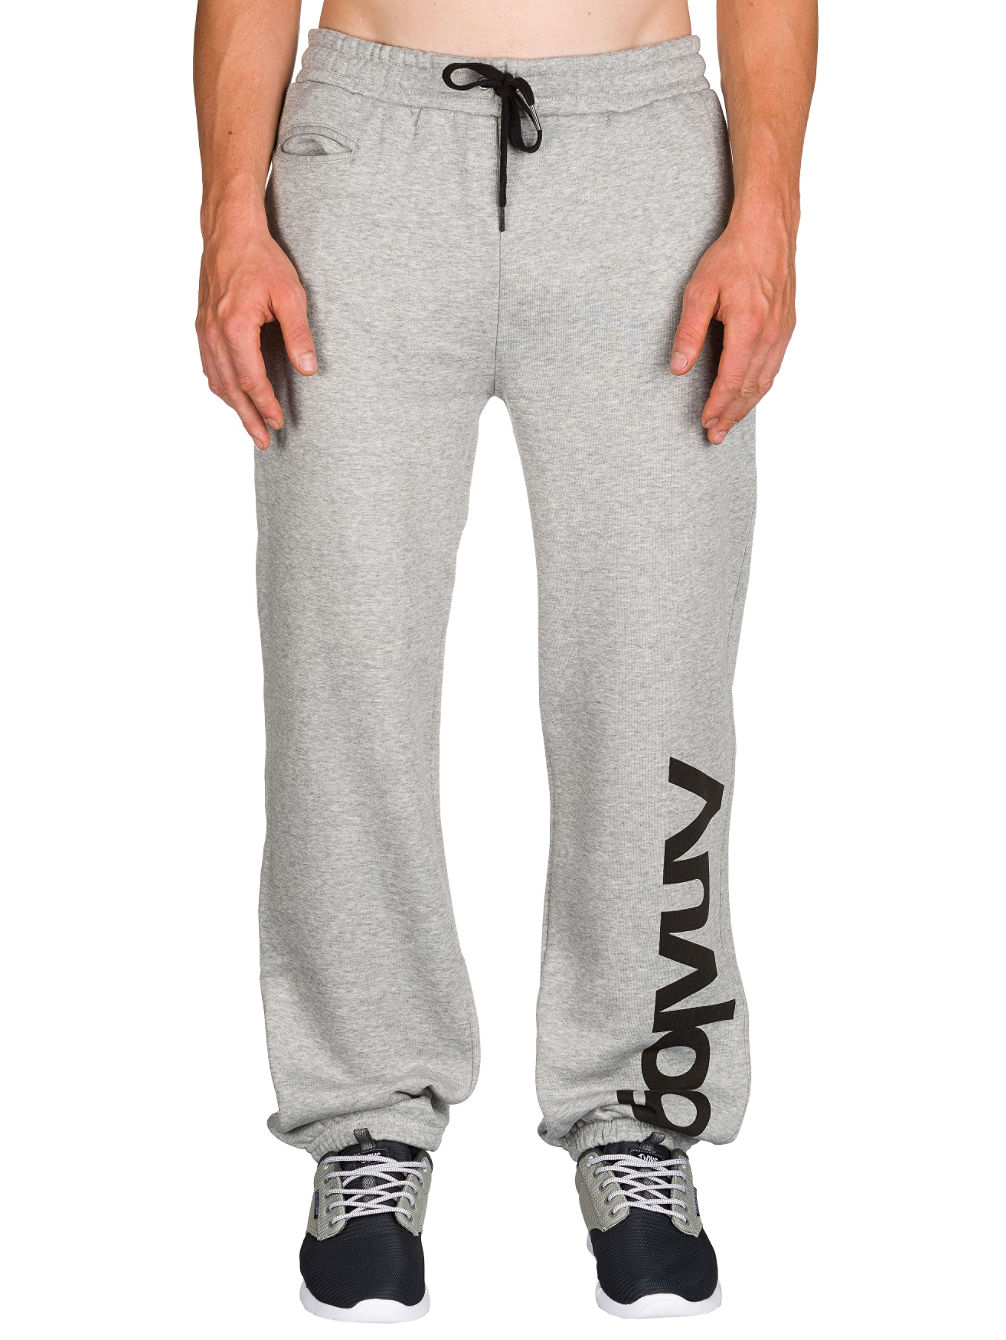 analog-company-fleece-jogging-pants